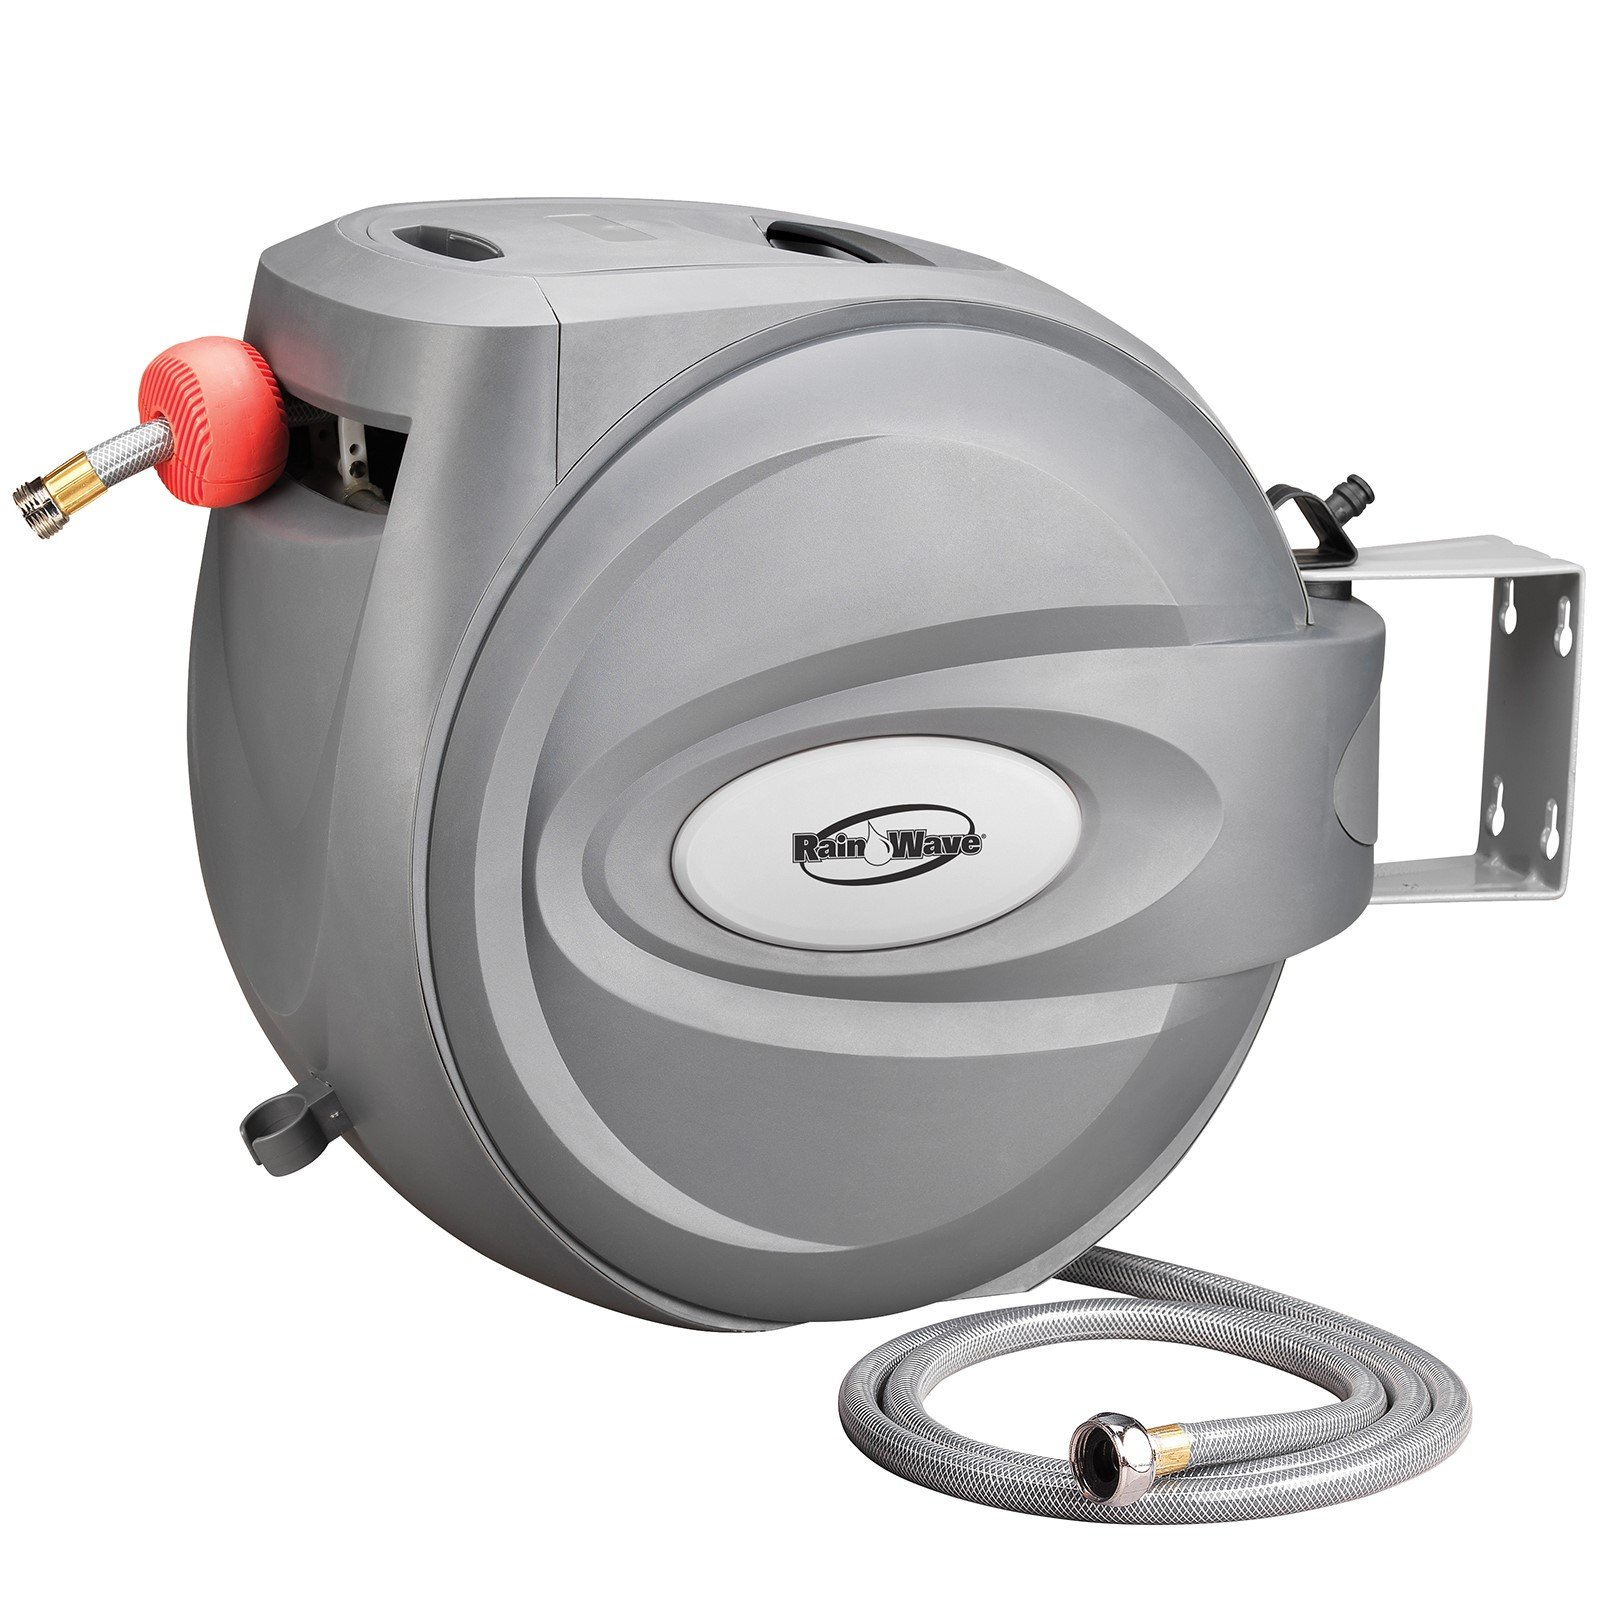 RAINWAVE RW-AR5880 Retractable Swivel Wall Mounted Hose Reel of 5/8'' x 80' by Rainwave